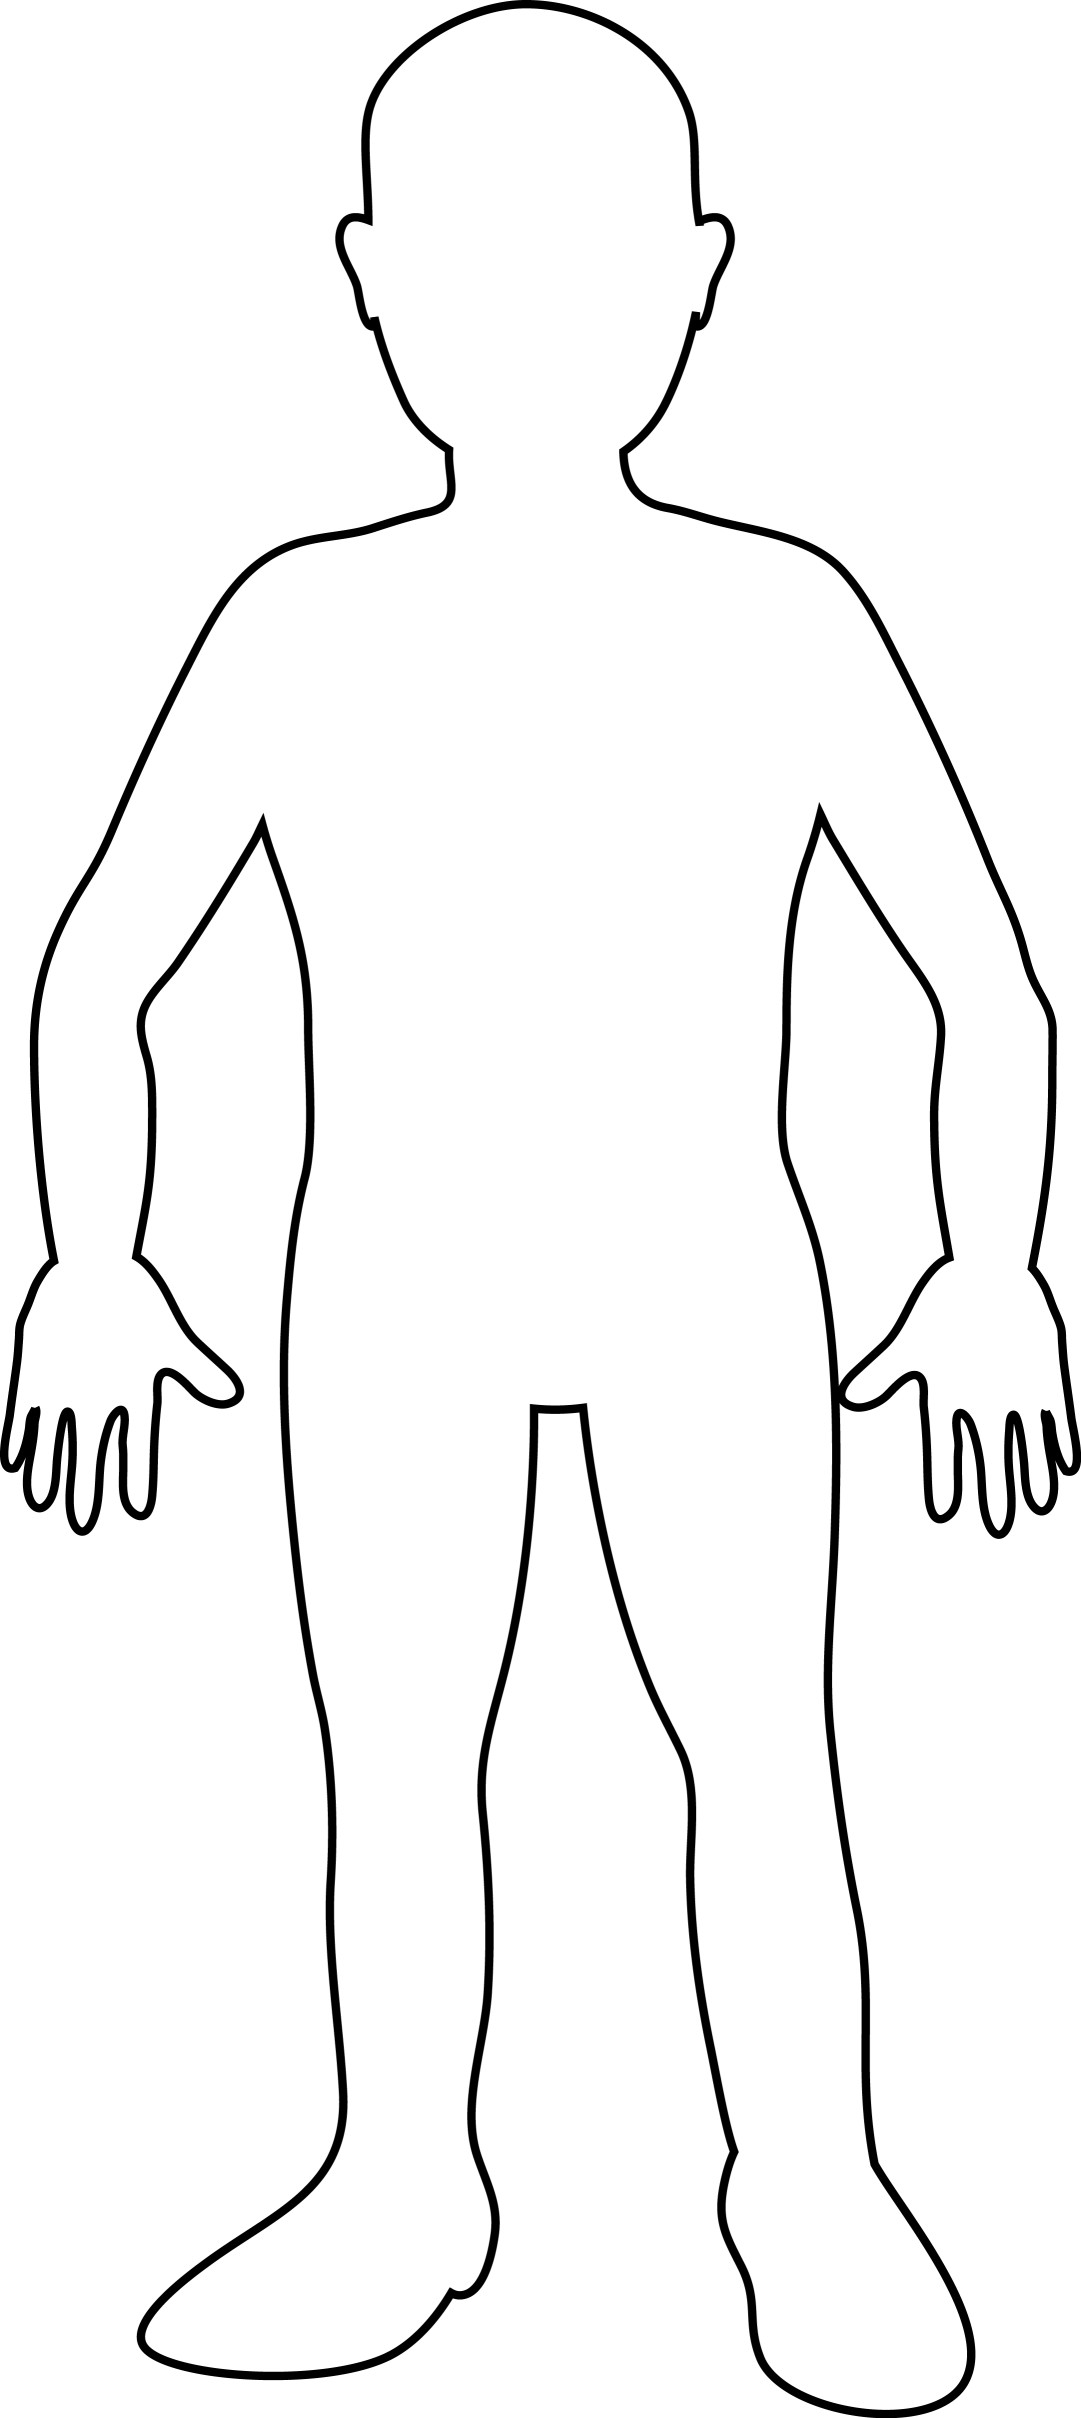 Outline Of Person ClipArt Best